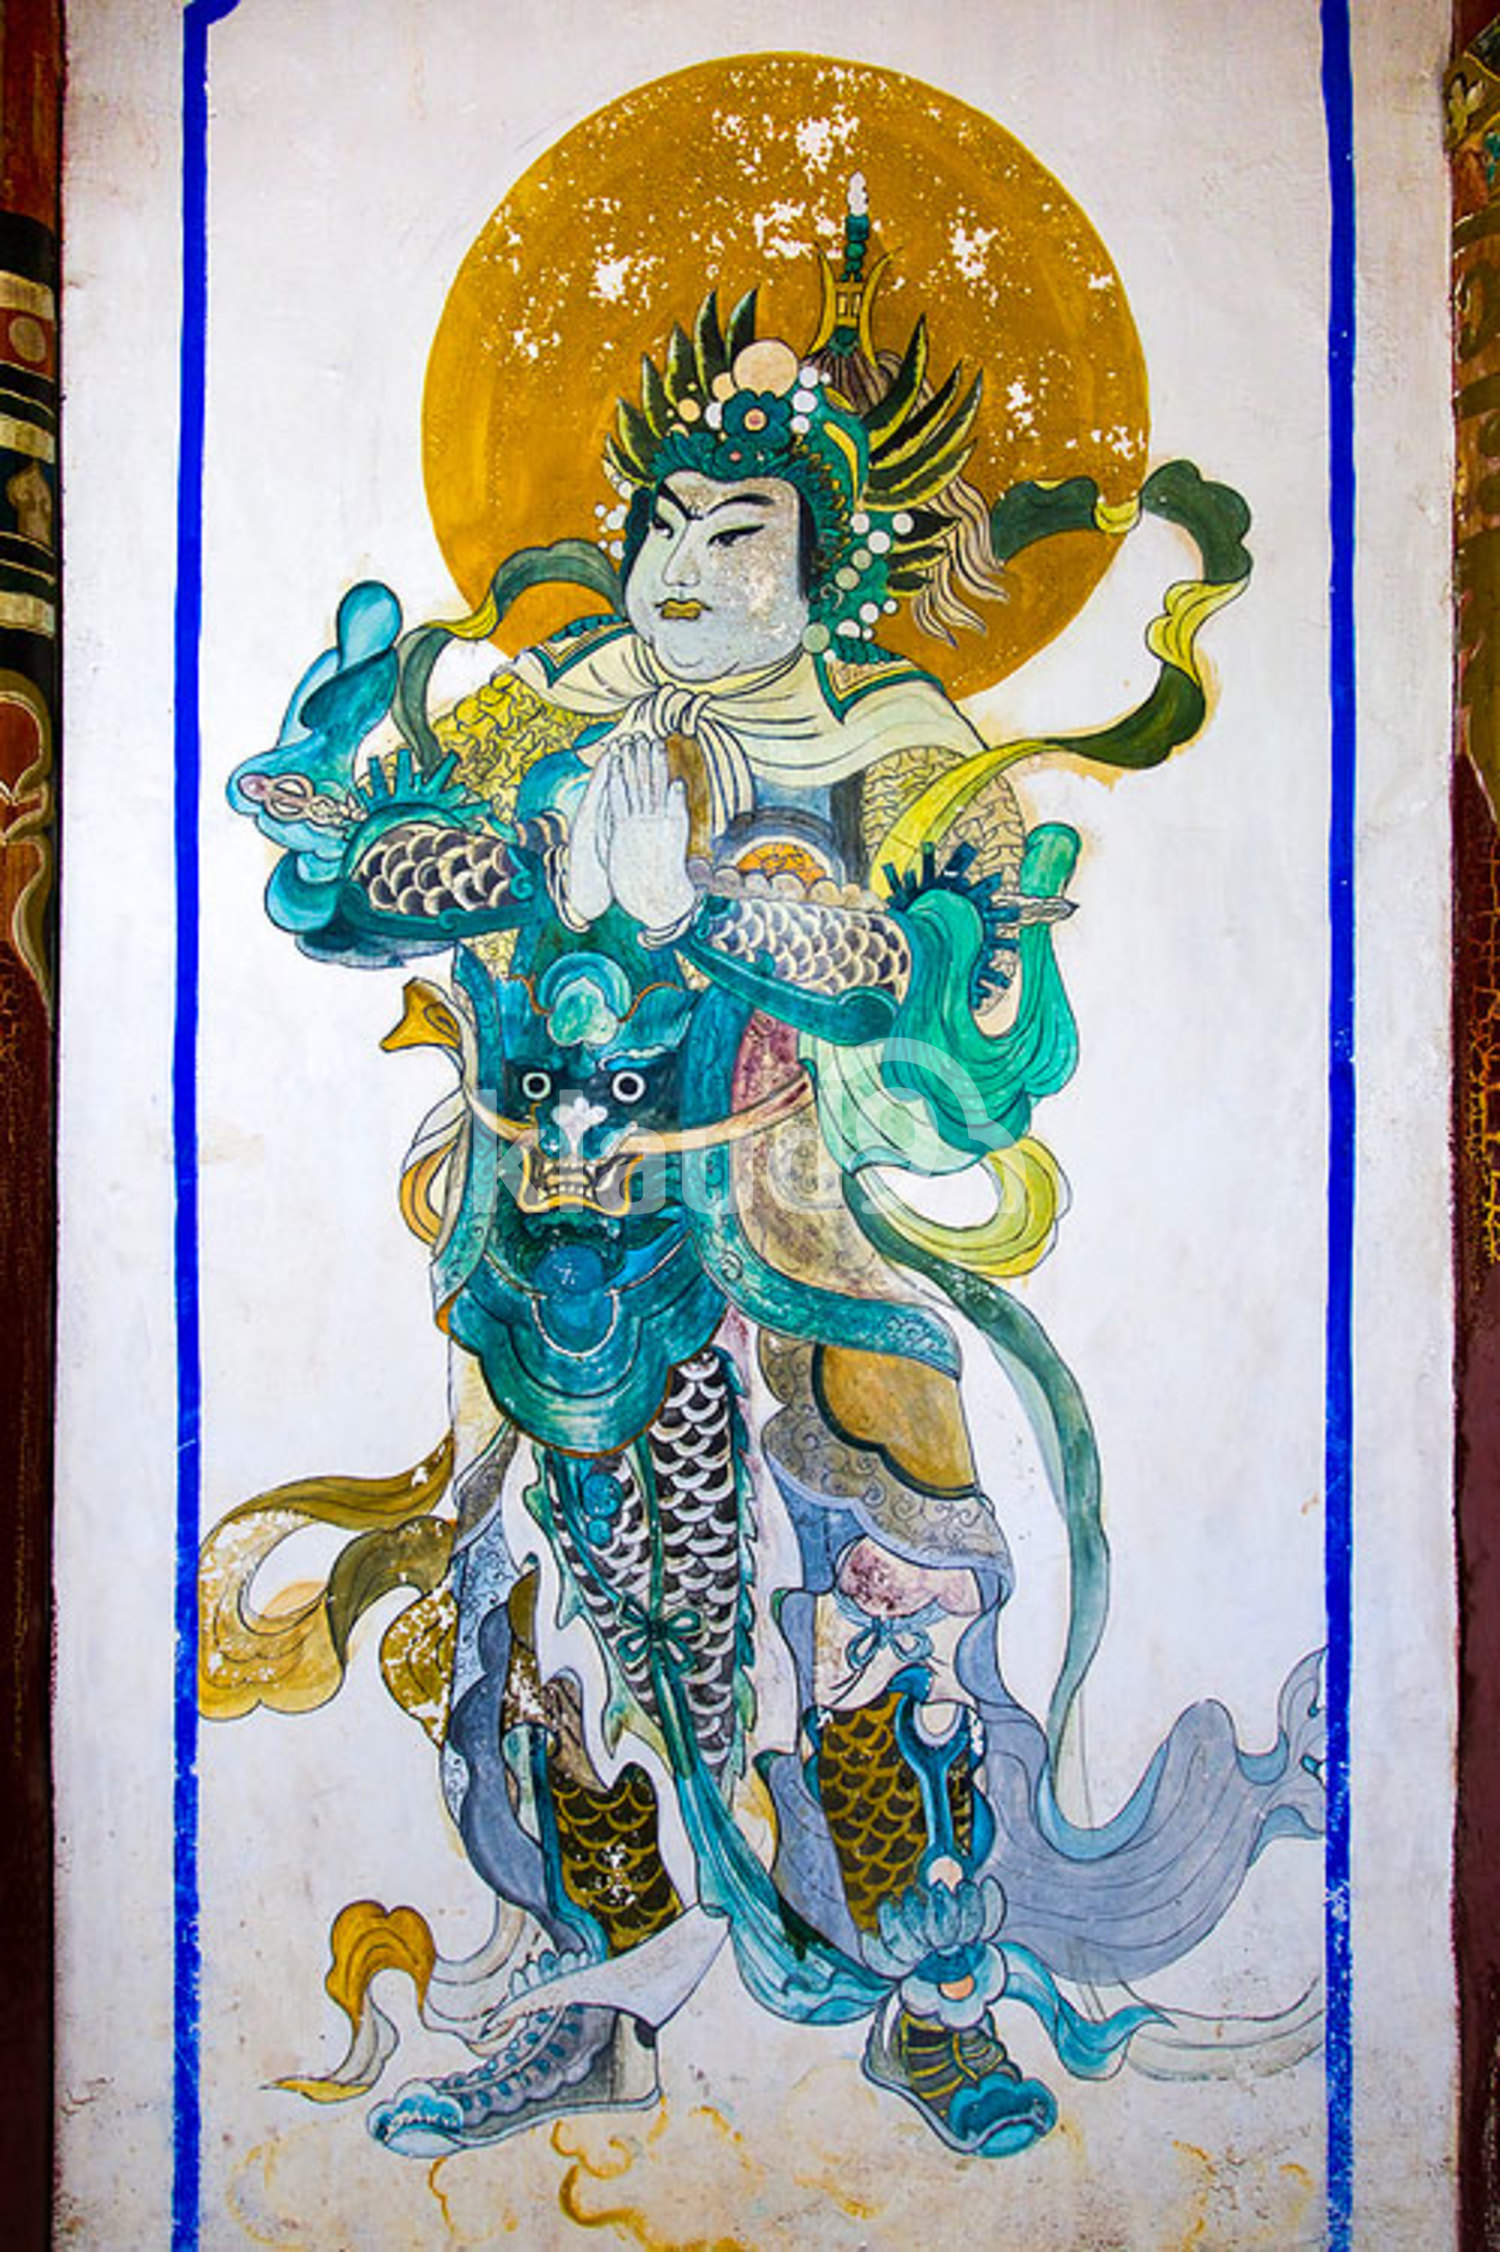 Ancient Chinese mural painting